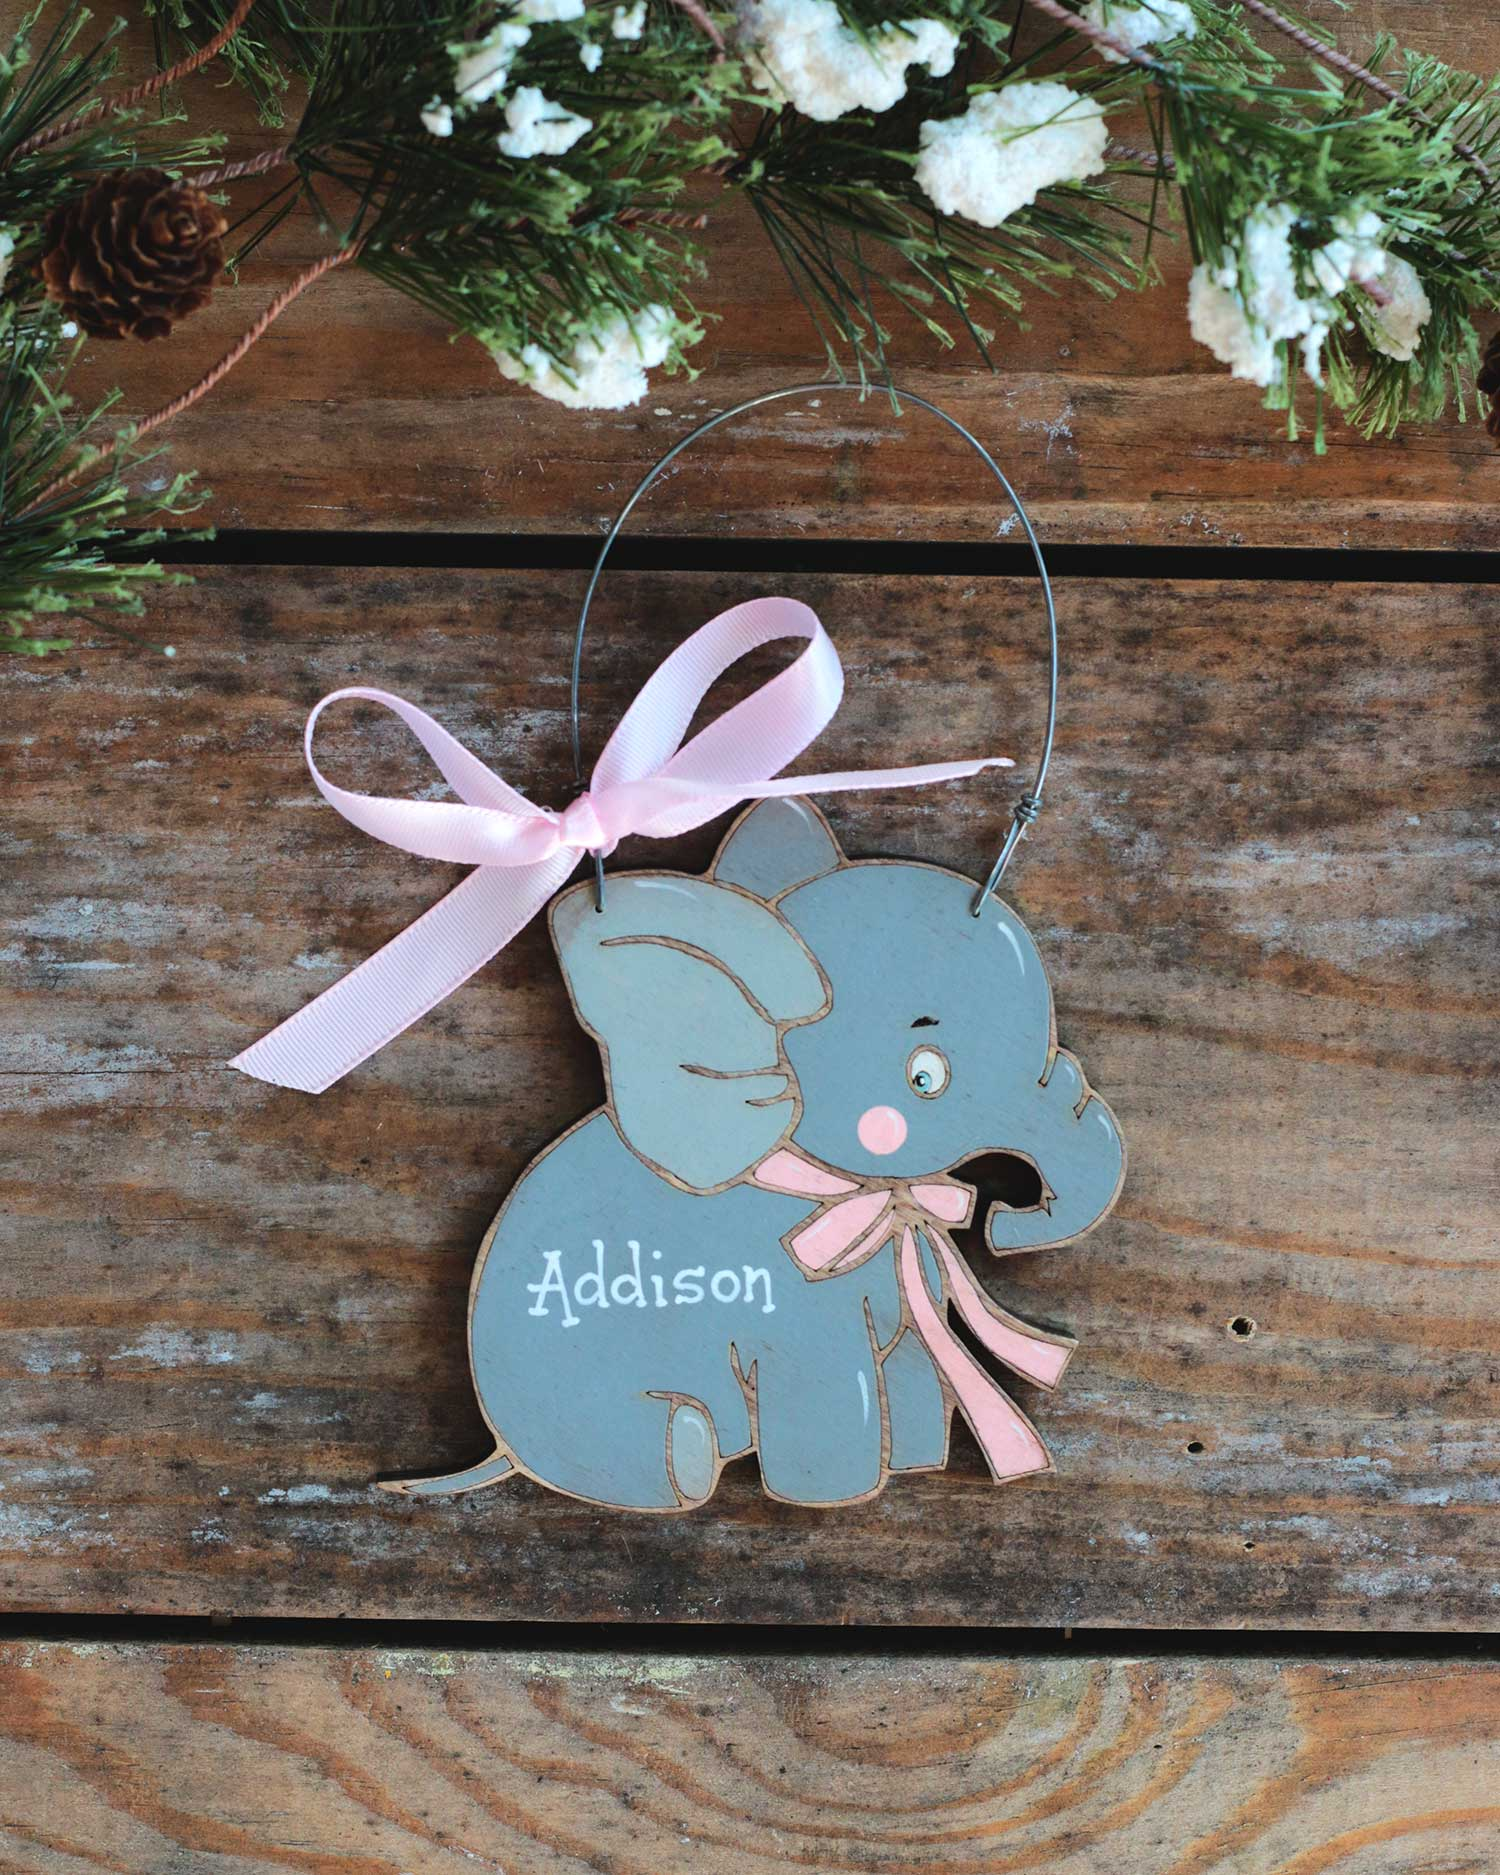 Baby Elephant Personalized Ornament at The Weed Patch